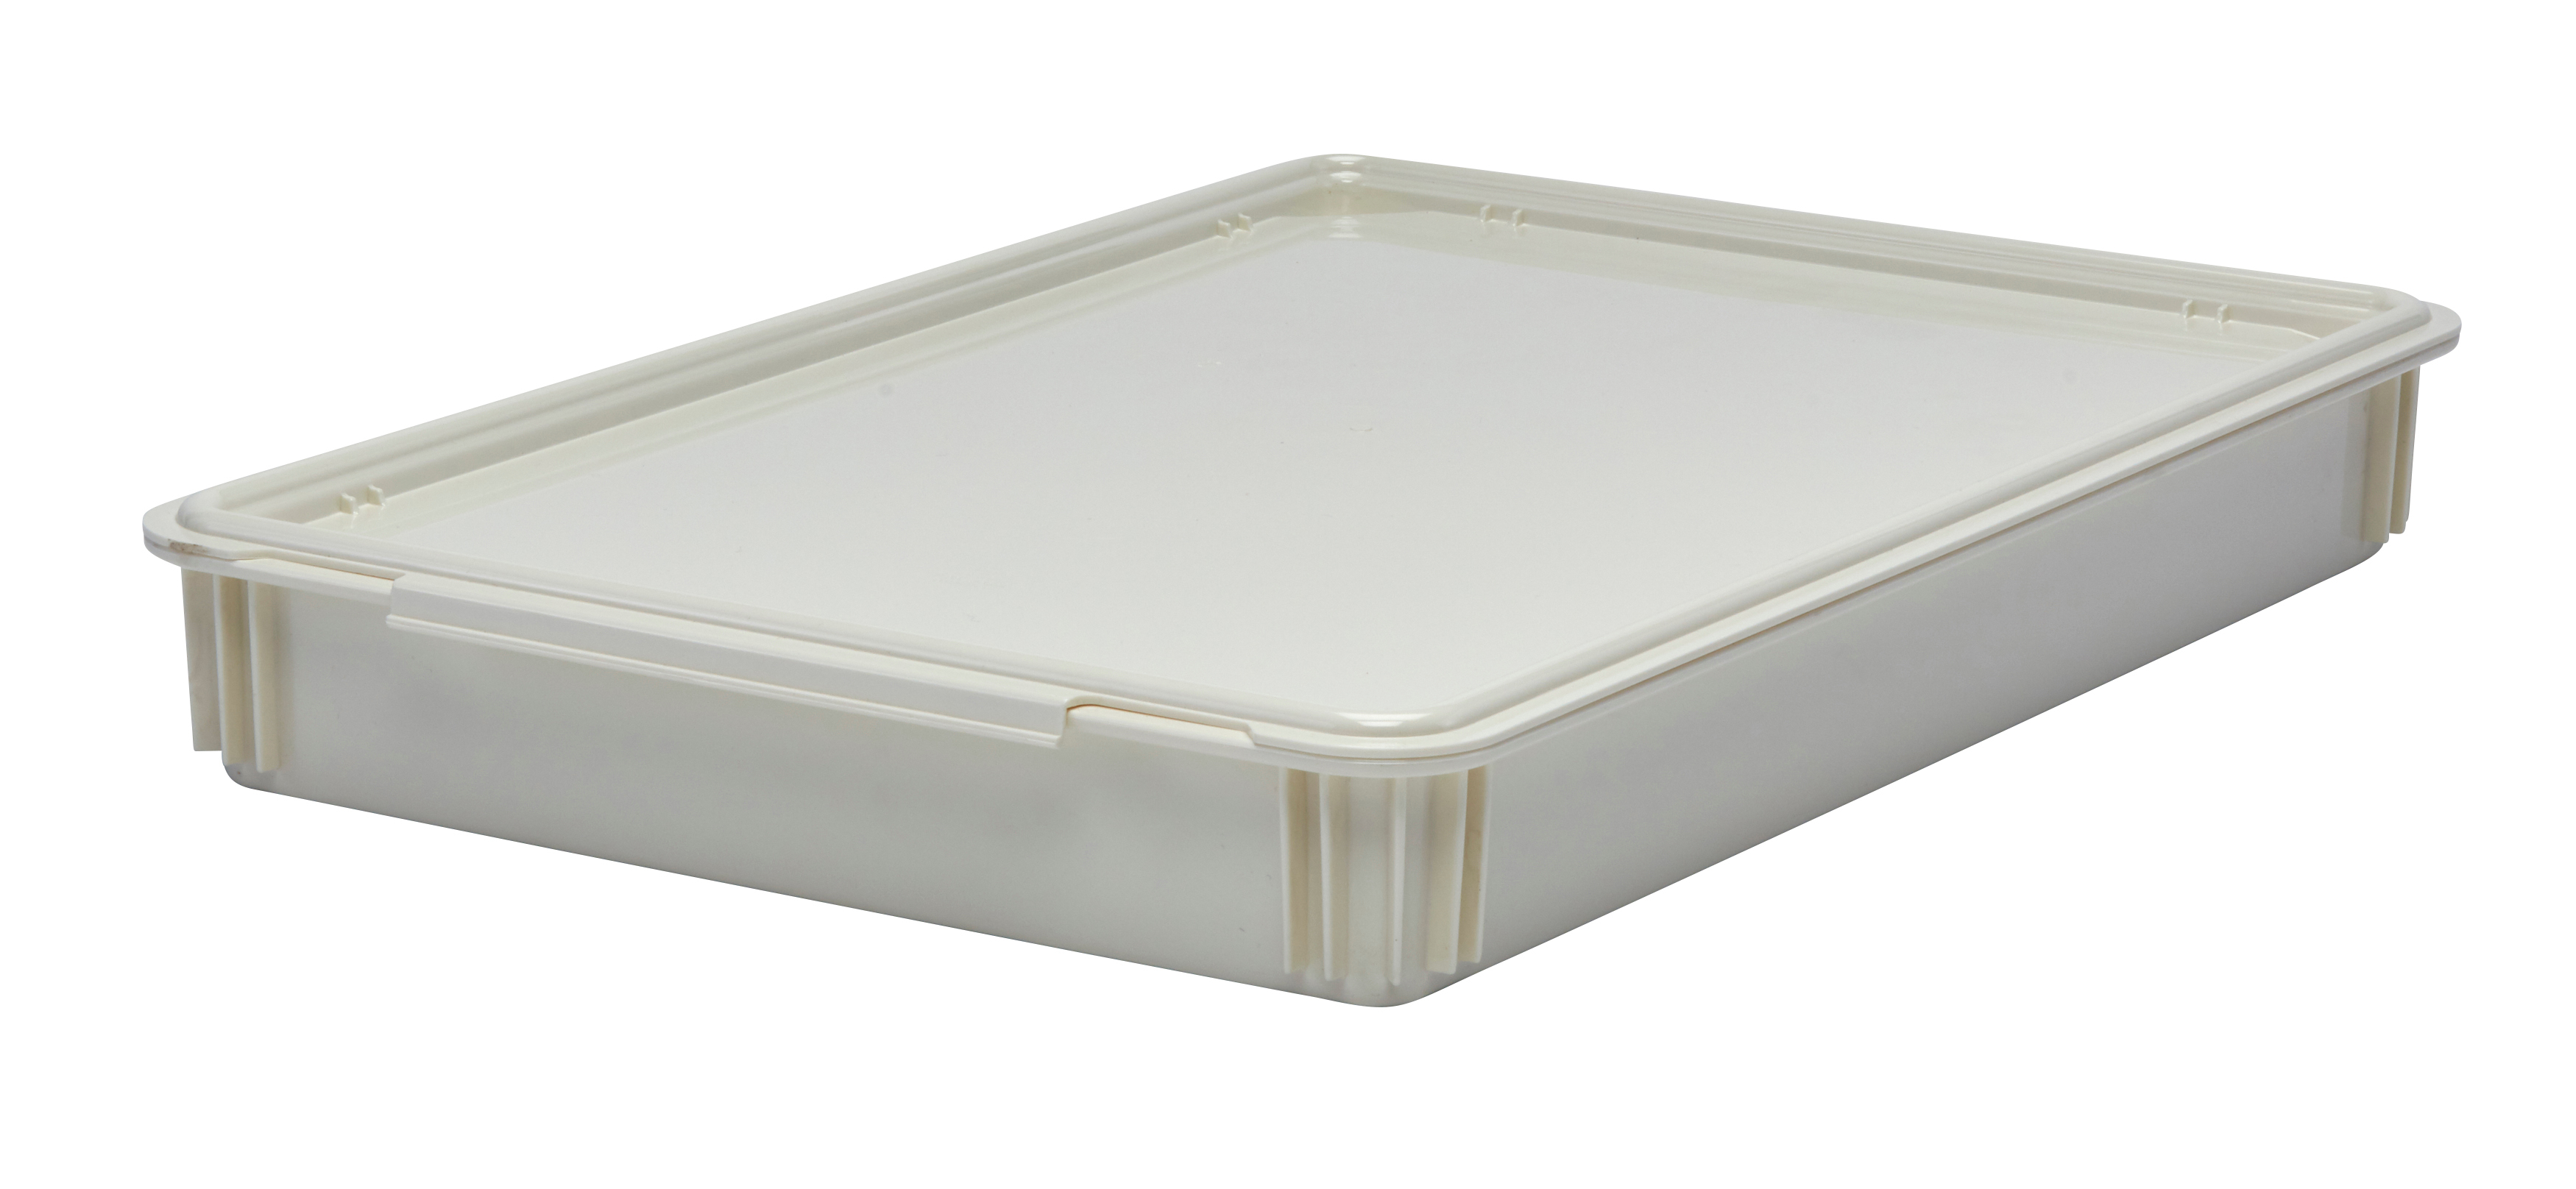 Cambro DB18263CW148 food/beverage storage container